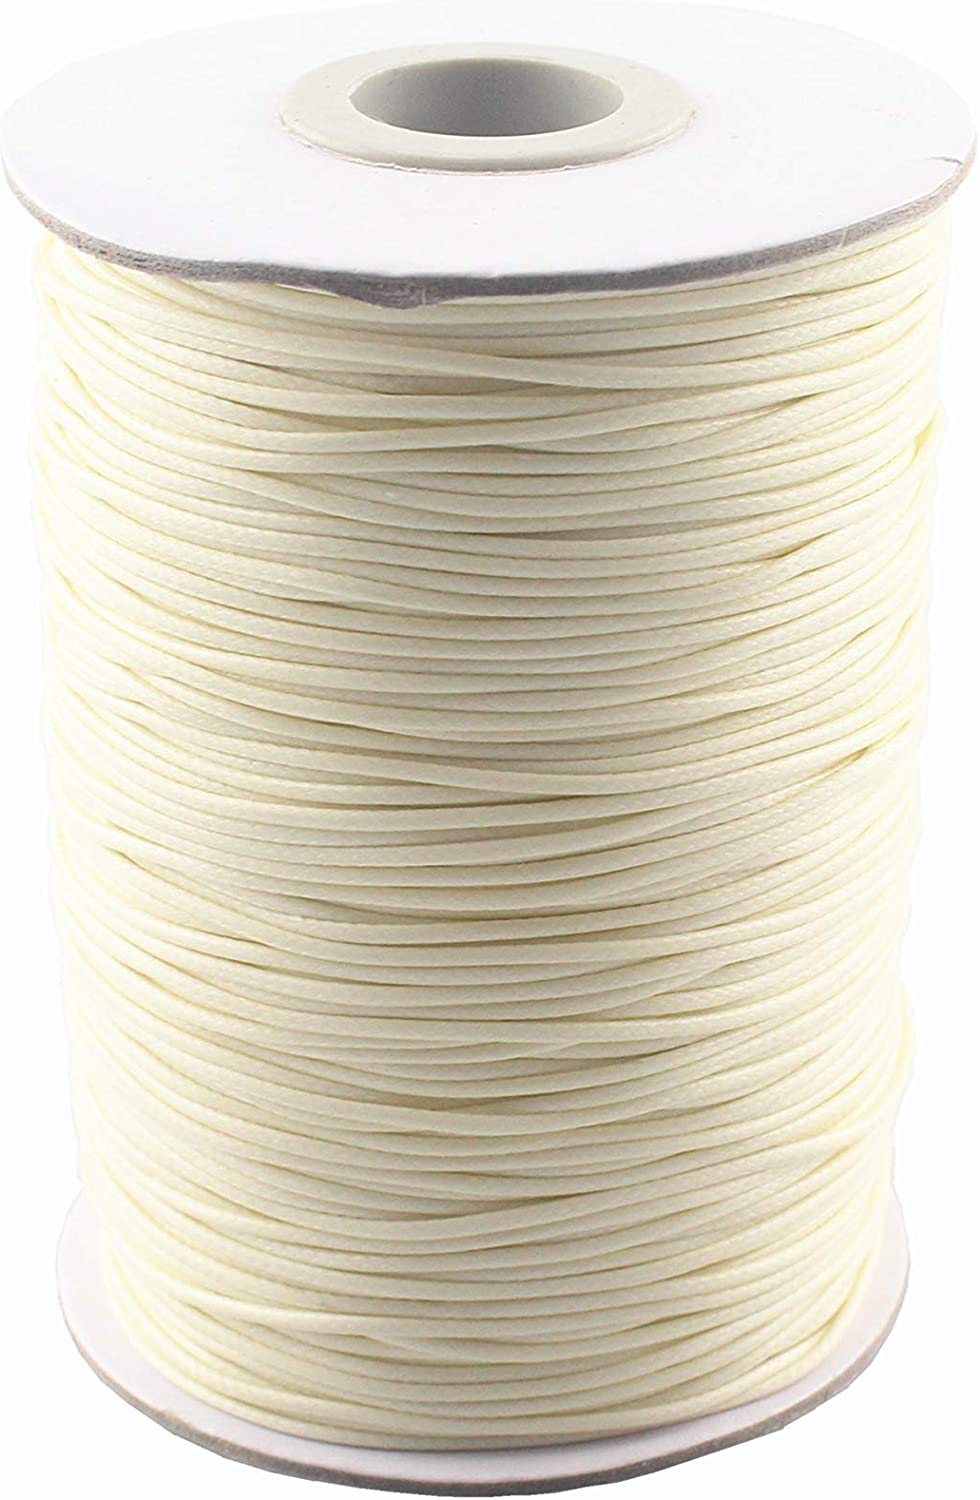 Natural QIANHAILIZZ 200 Yards 1.0 mm Waxed Jewelry Making Cord Waxed Beading String Craft DIY Thread